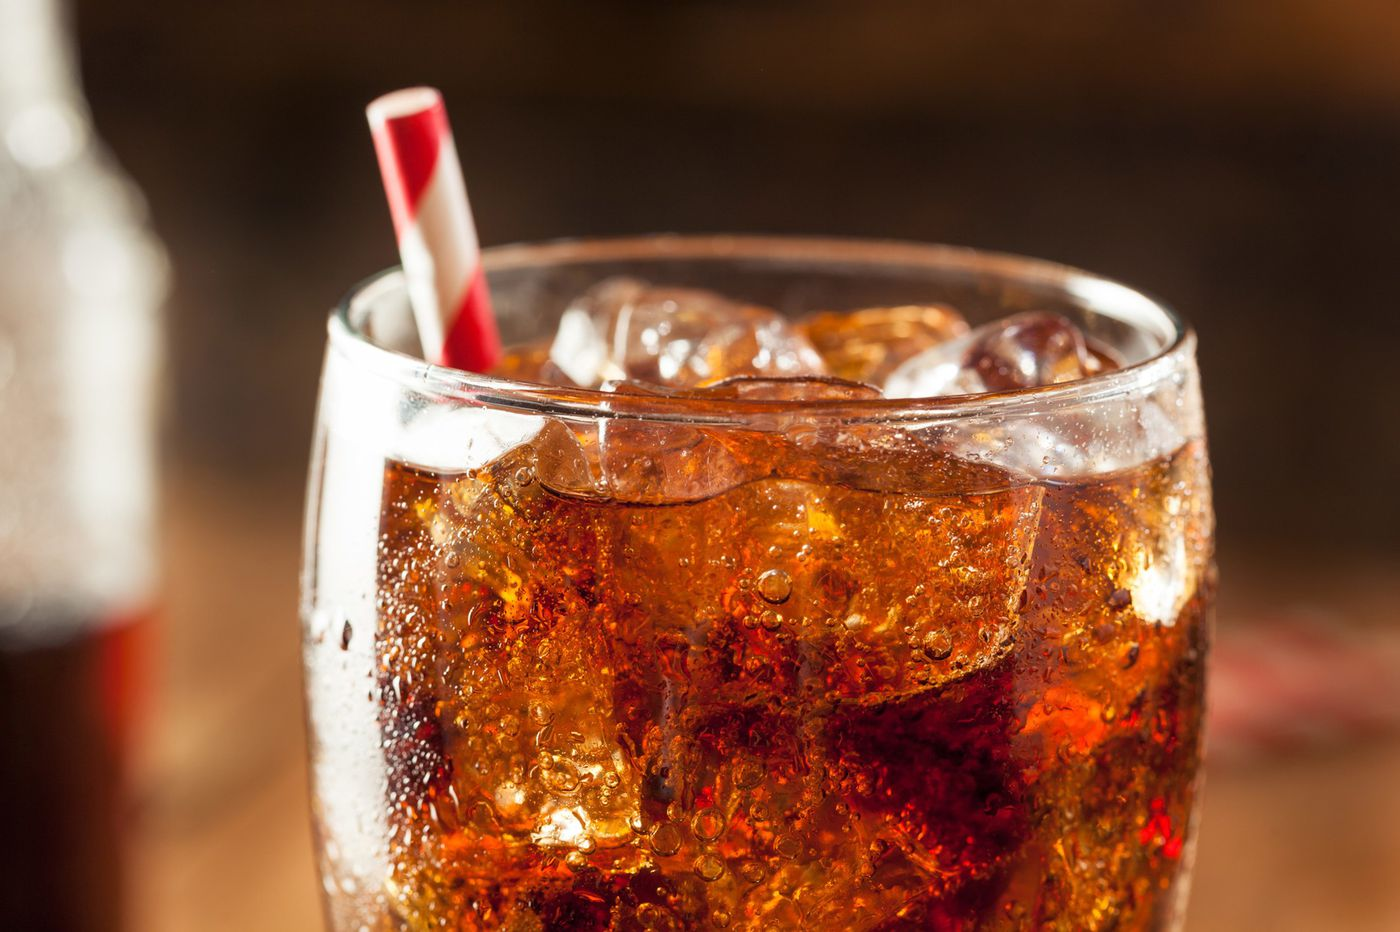 Listing added sugar content in soda could save $31 billion in health costs, study finds